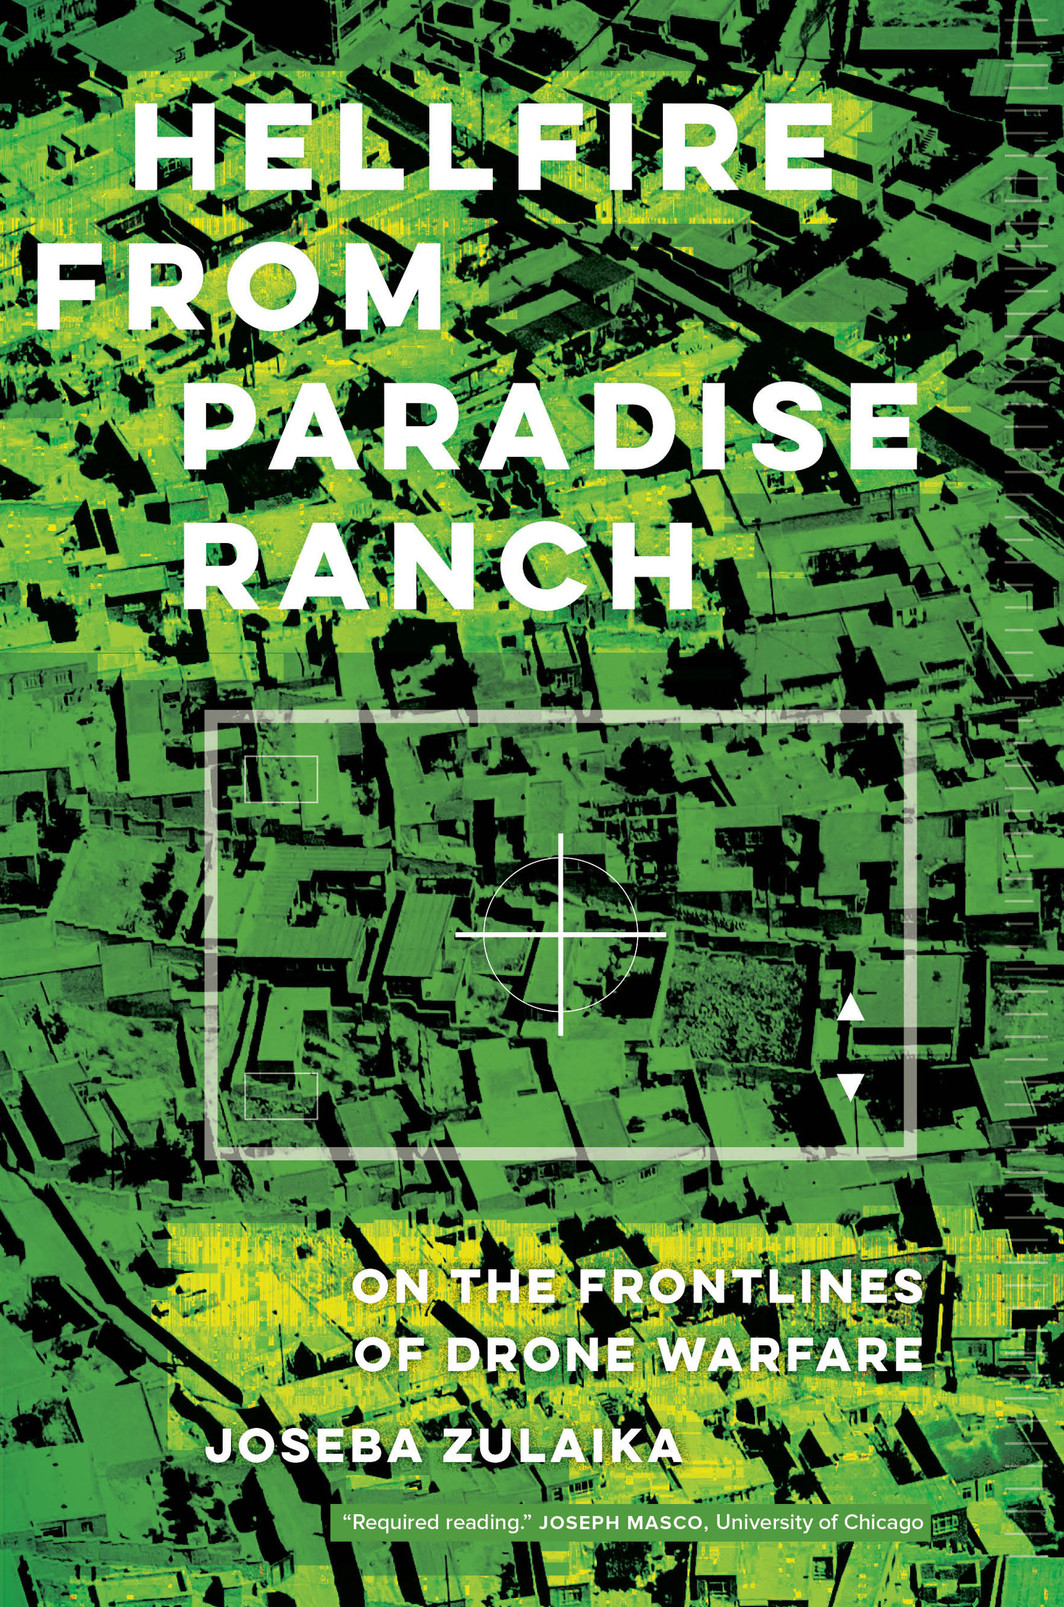 The cover of Hellfire from Paradise Ranch: On the Front Lines of Drone Warfare